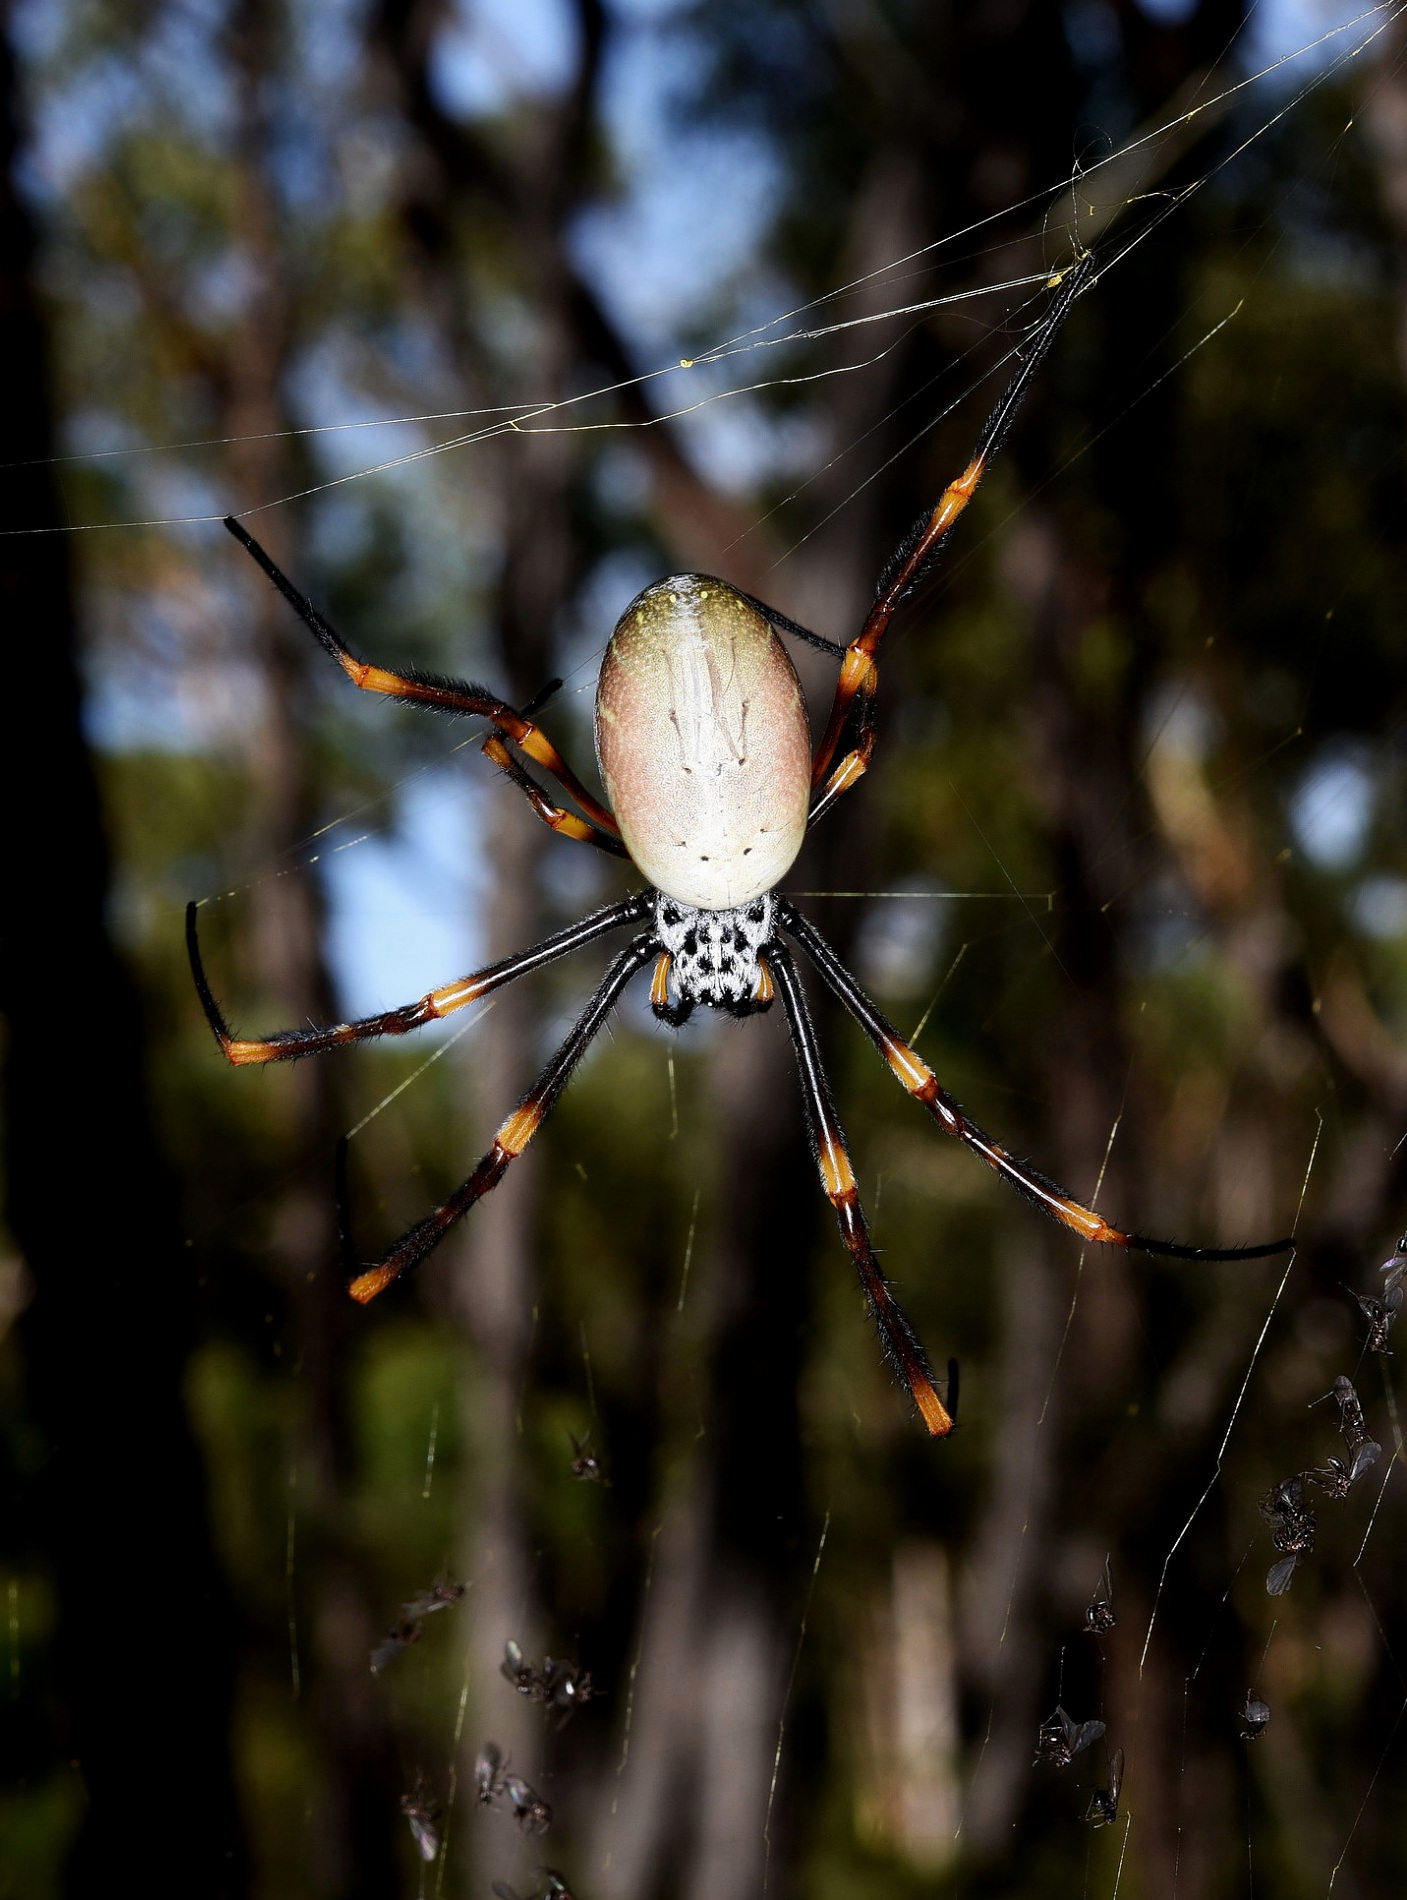 An adult female humped golden orb-weaver ( Nephila plumipes ) in nature at Jervis Bay, NSW, Australia. This Old World true spider species is among those known to capture small birds in their large webs. Image: R. Parsons.